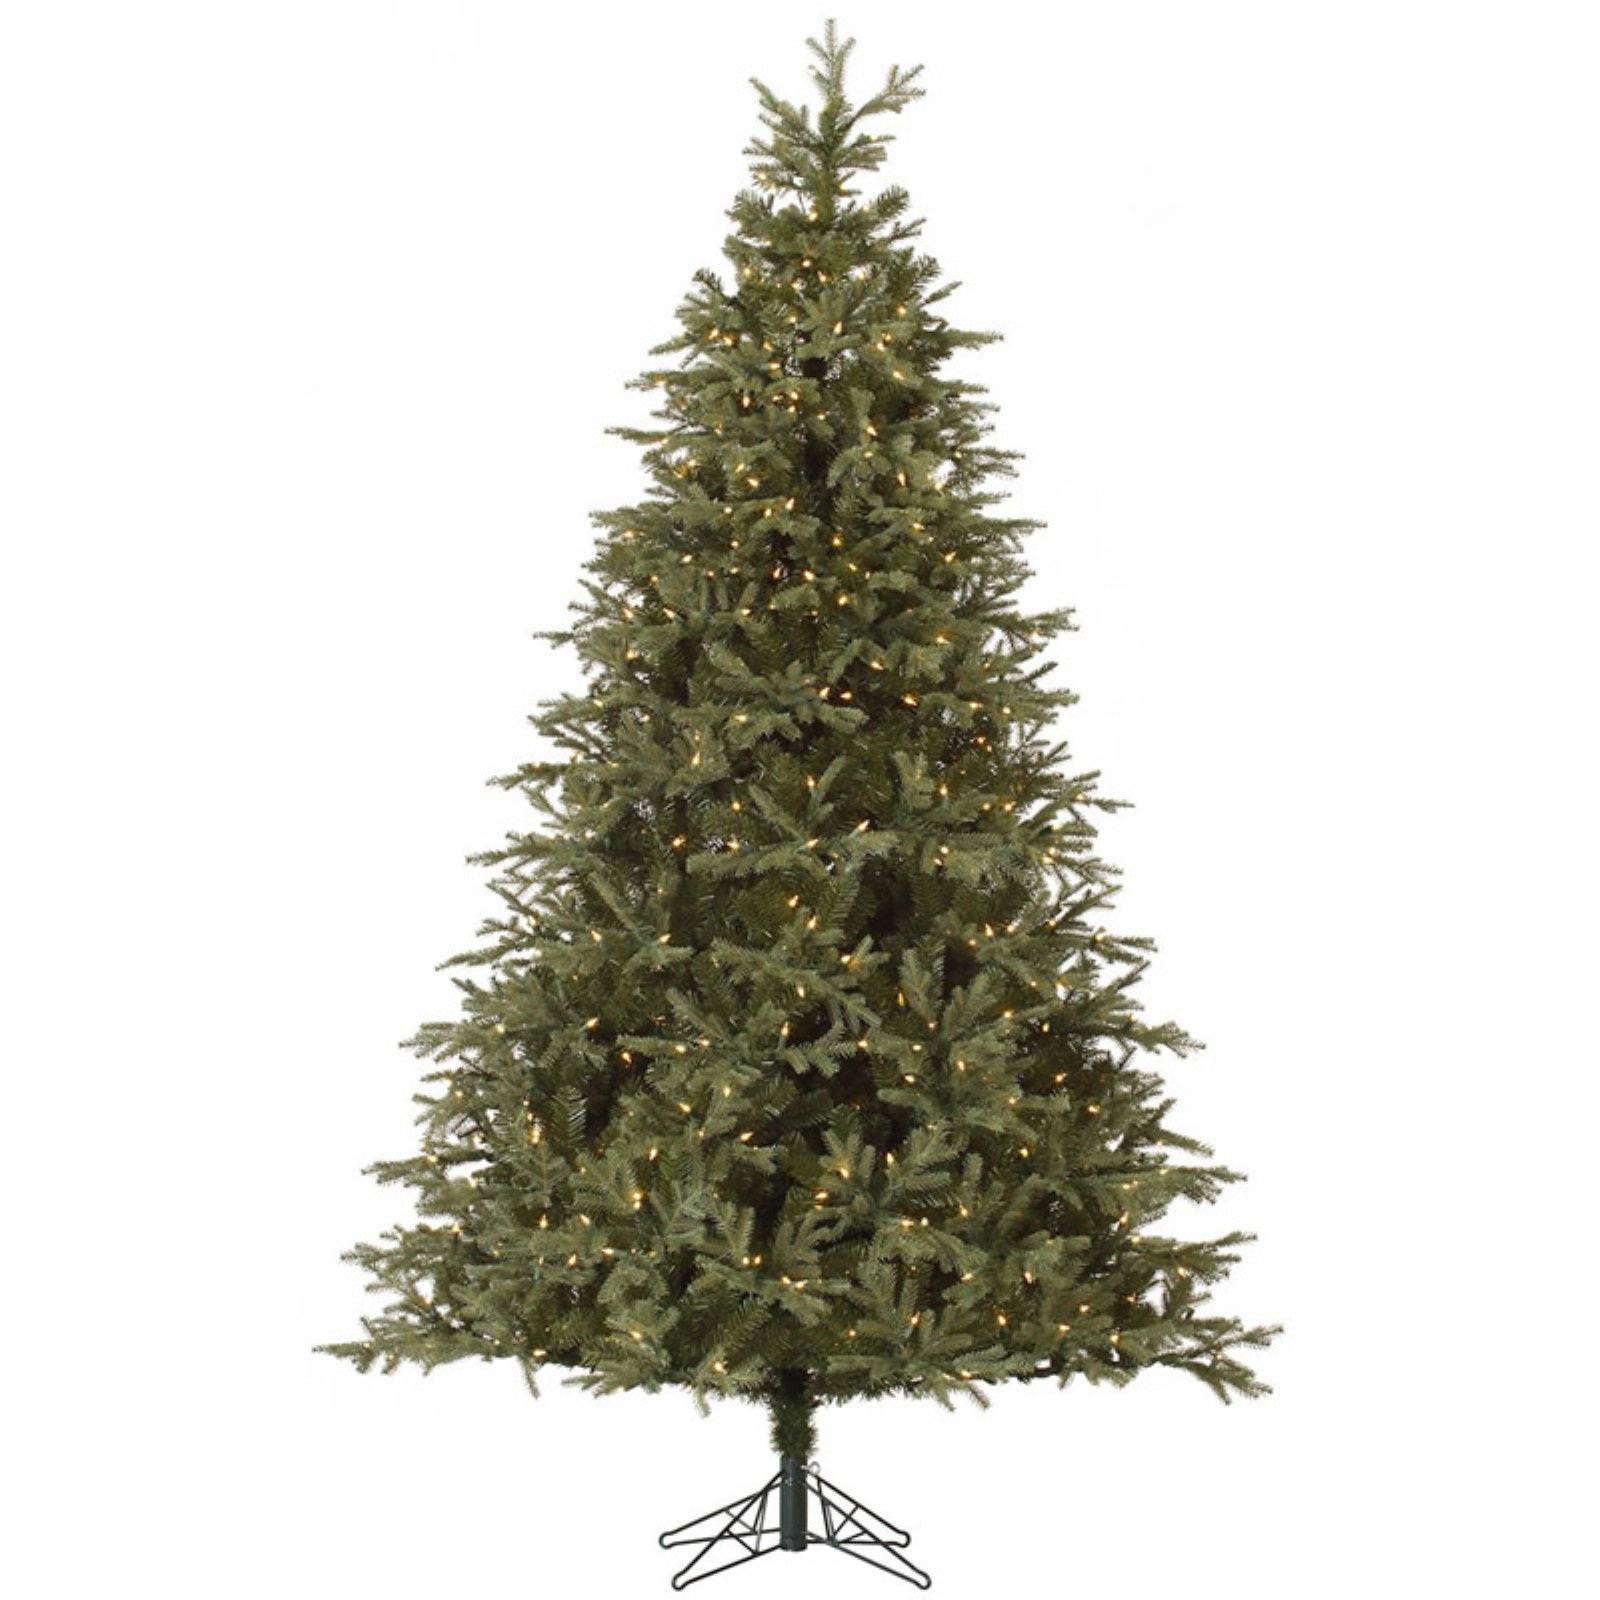 Vickerman Elk Frasier Fir Pre-lit Christmas Tree with Metal Stand